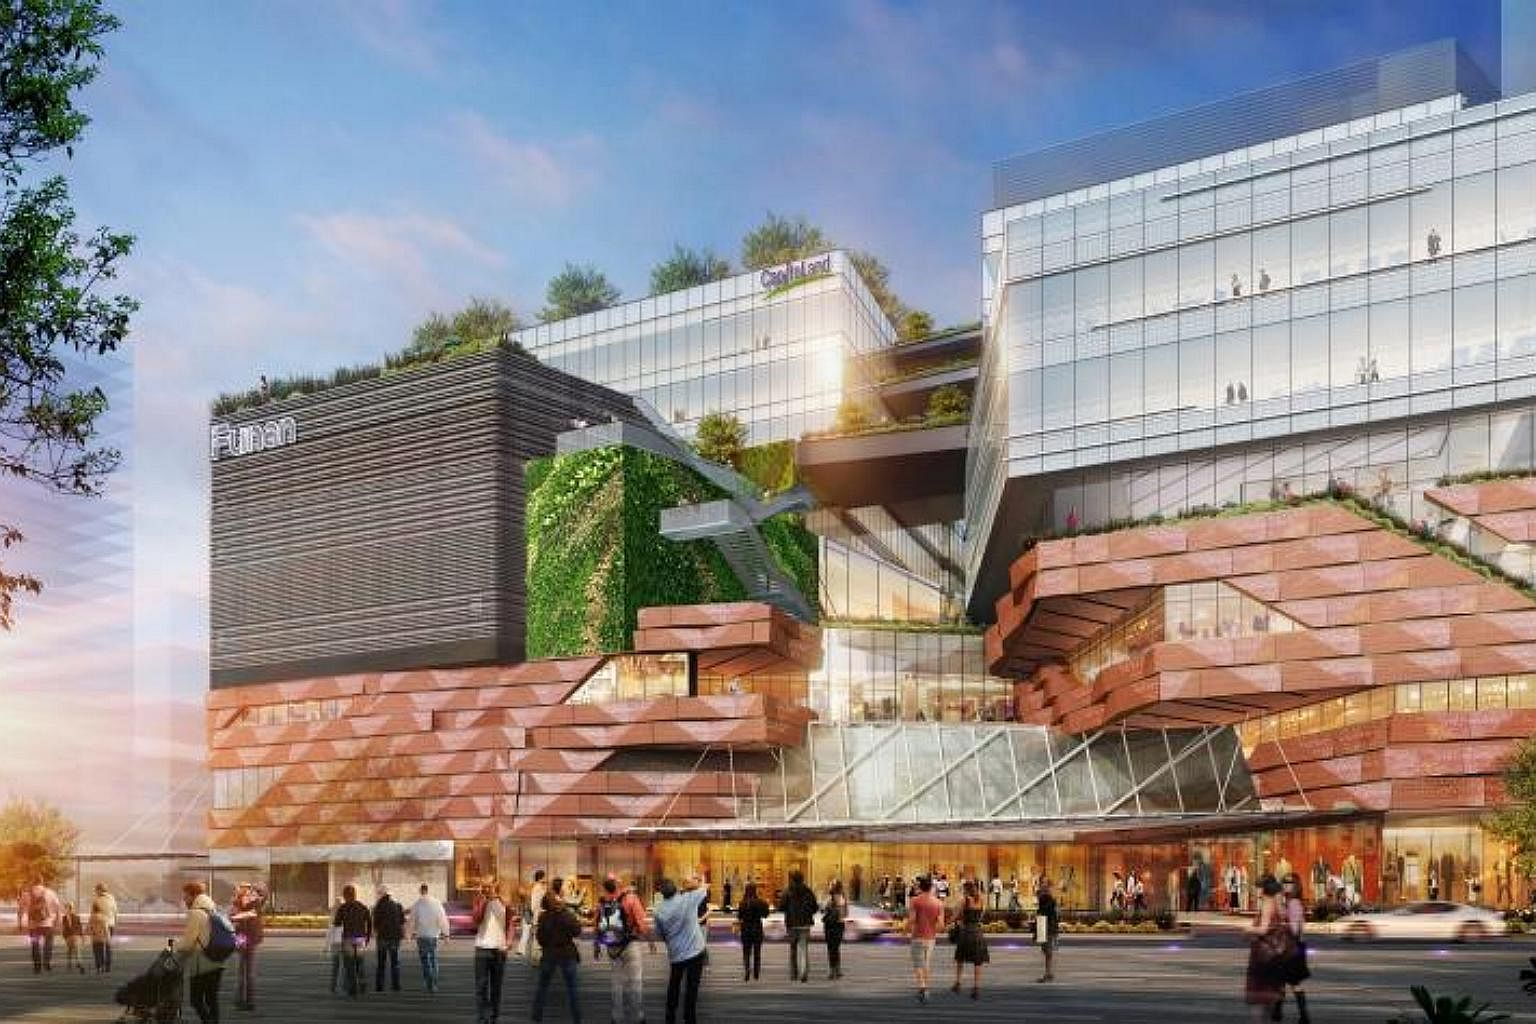 Underground Walkway Will Link The New Funan Mall To City Hall Mrt Singapore News Top Stories The Straits Times